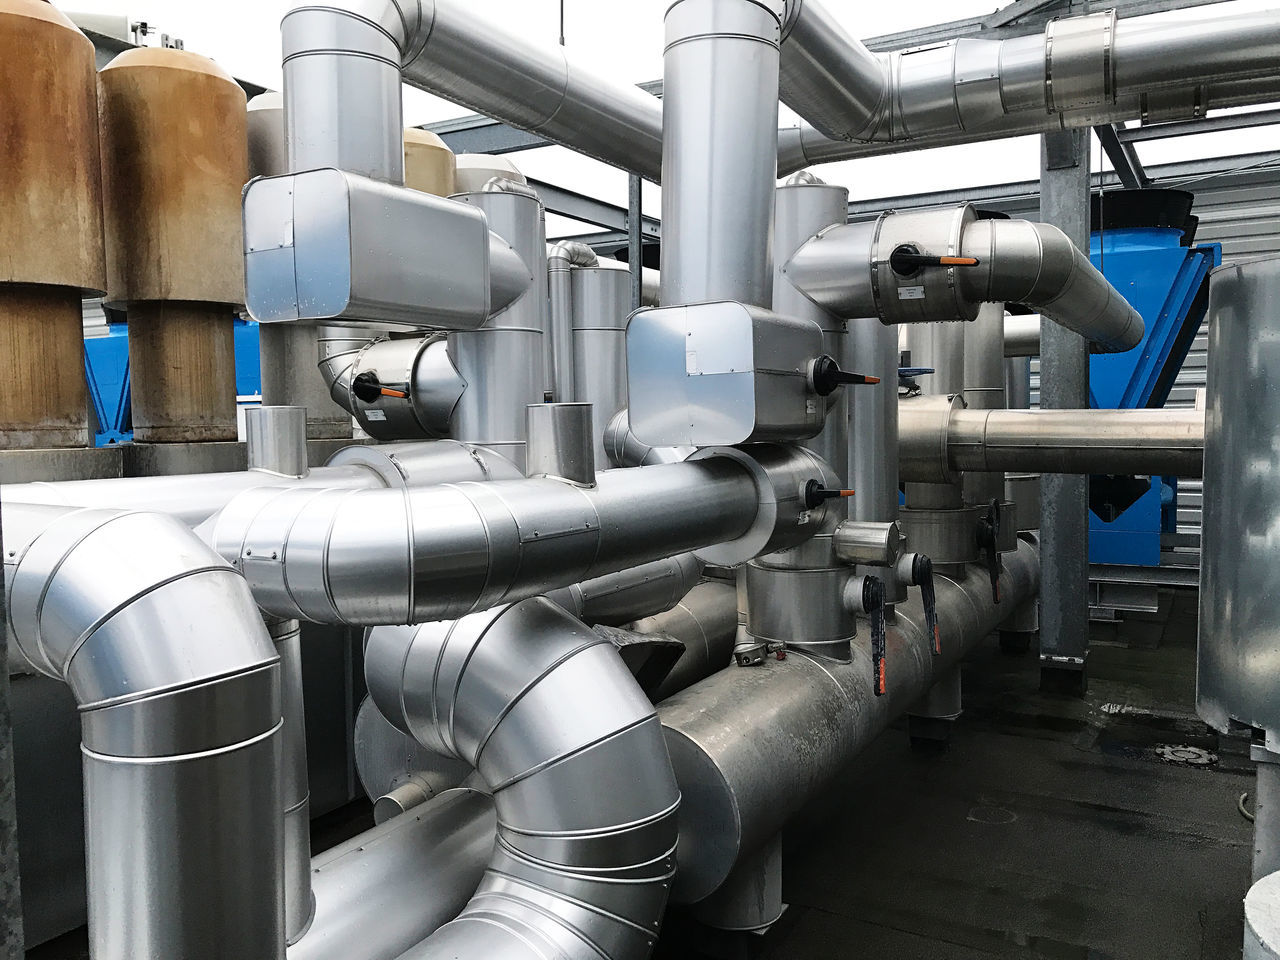 Air conditioning and heat pump with piping of air conditioning Air Conditioning Cold Aggregates Cold Bearer Cold Means Cold Steam Cold Steam Arrangement Compressor Day Emergency Disconnection Heat Pump Piping Pump Raw Management Refrigerant Plant Refrigerator Surroundings Temperature Temperature Warm Bearer Warm Pump